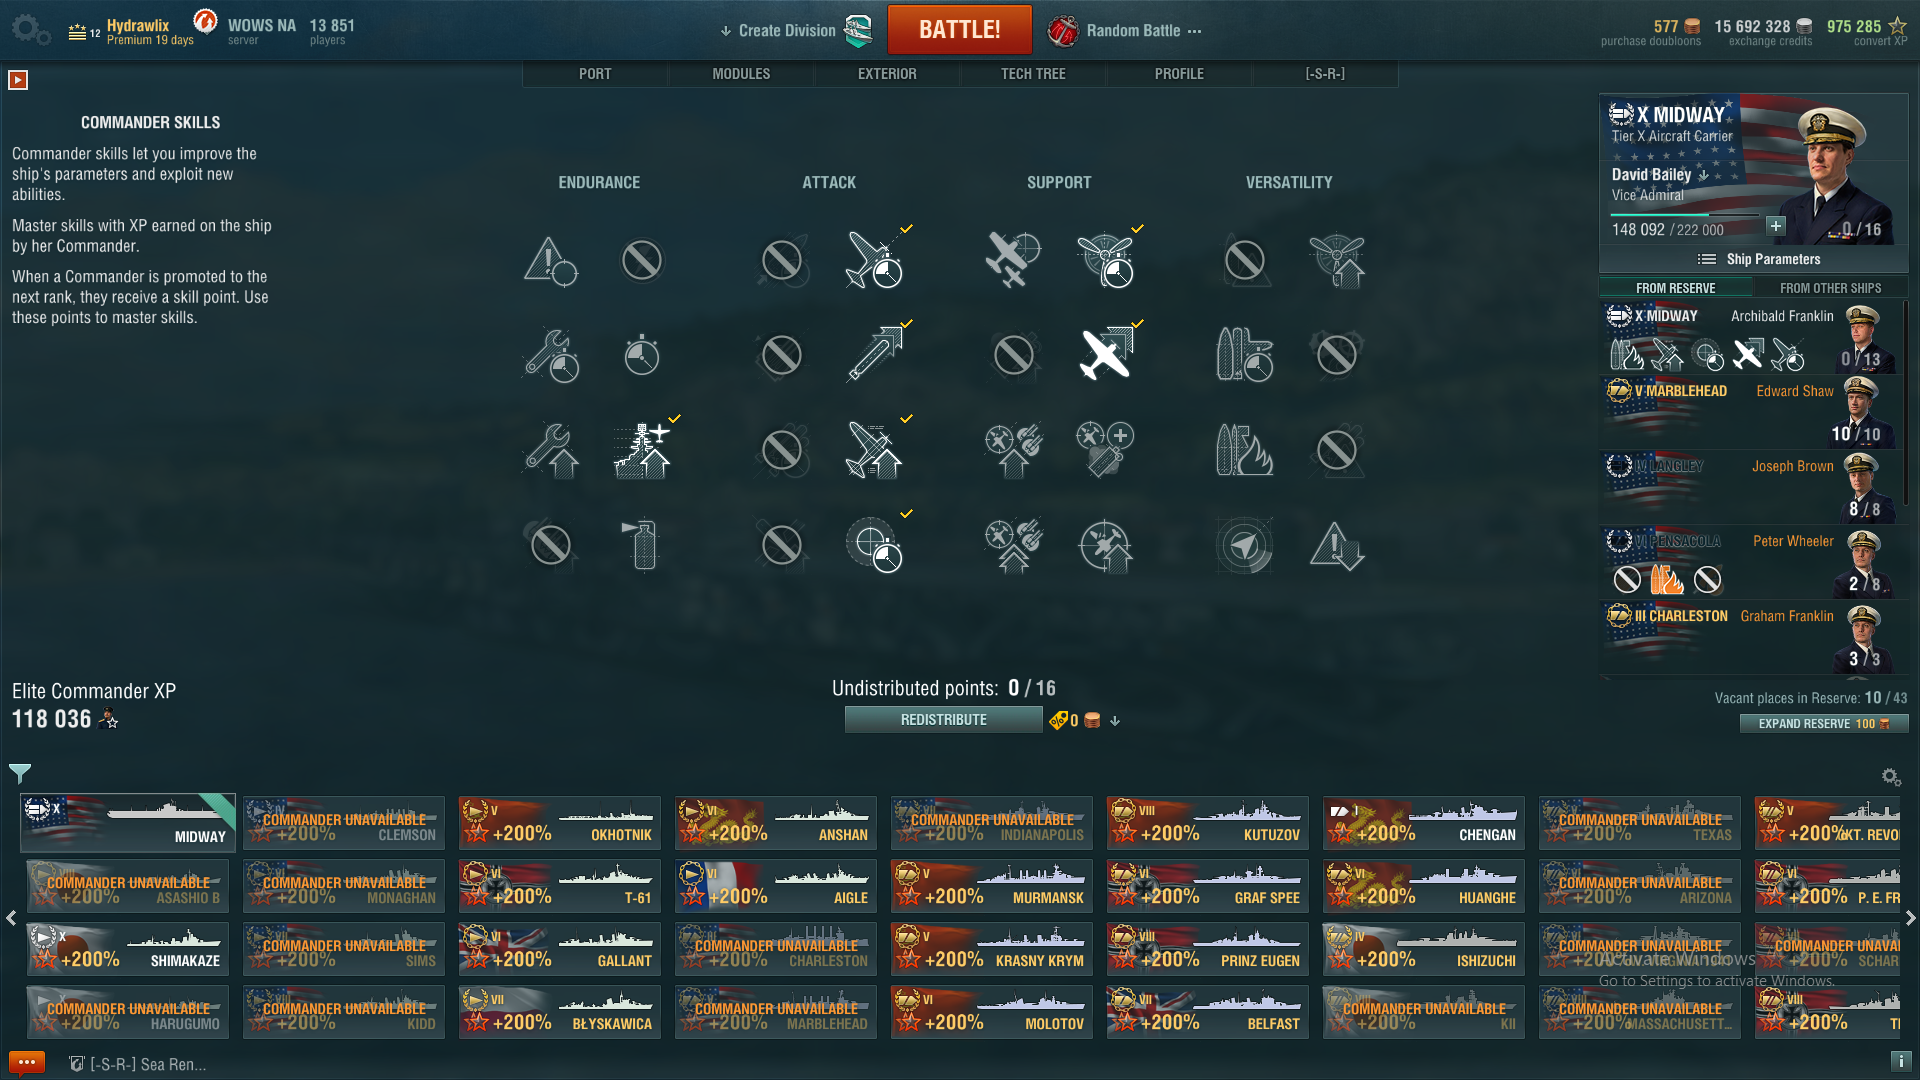 8 0 cv captain skills  - aircraft carriers